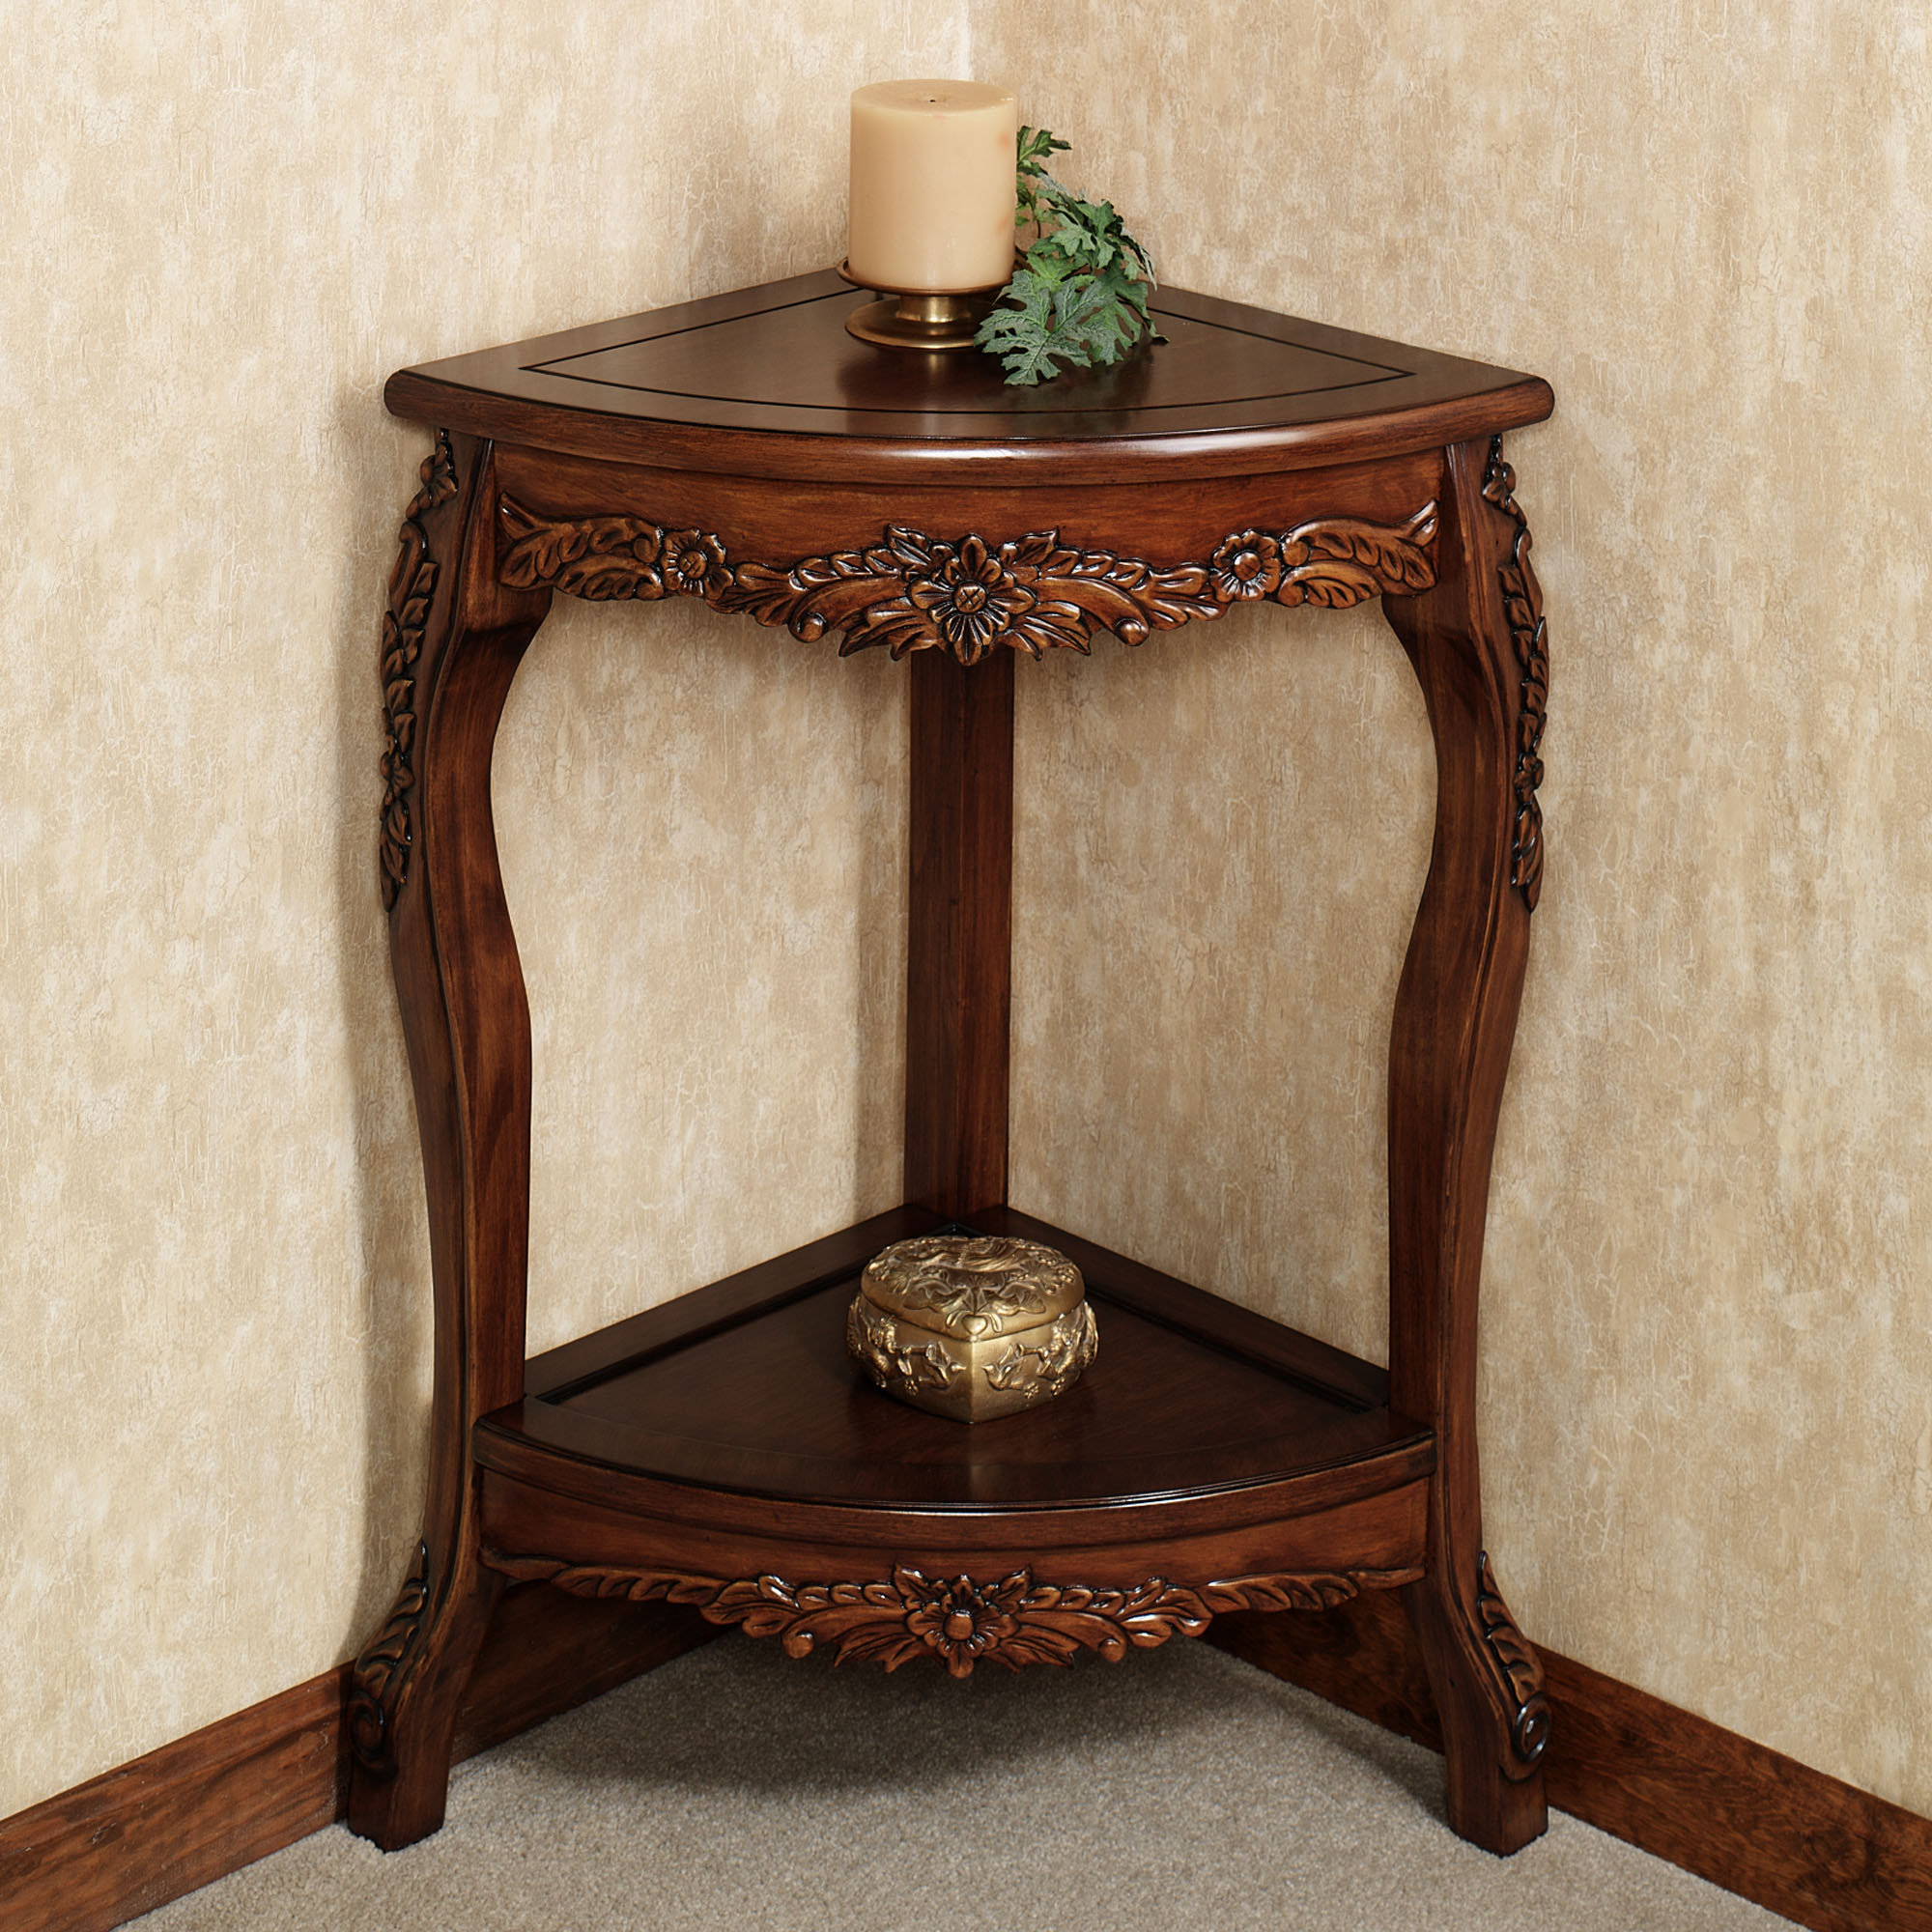 kingscourt corner accent table regarding nice classy with storage natural wood iron coffee drum big lots dresser dining room modern inch round linen tablecloth blue patterned